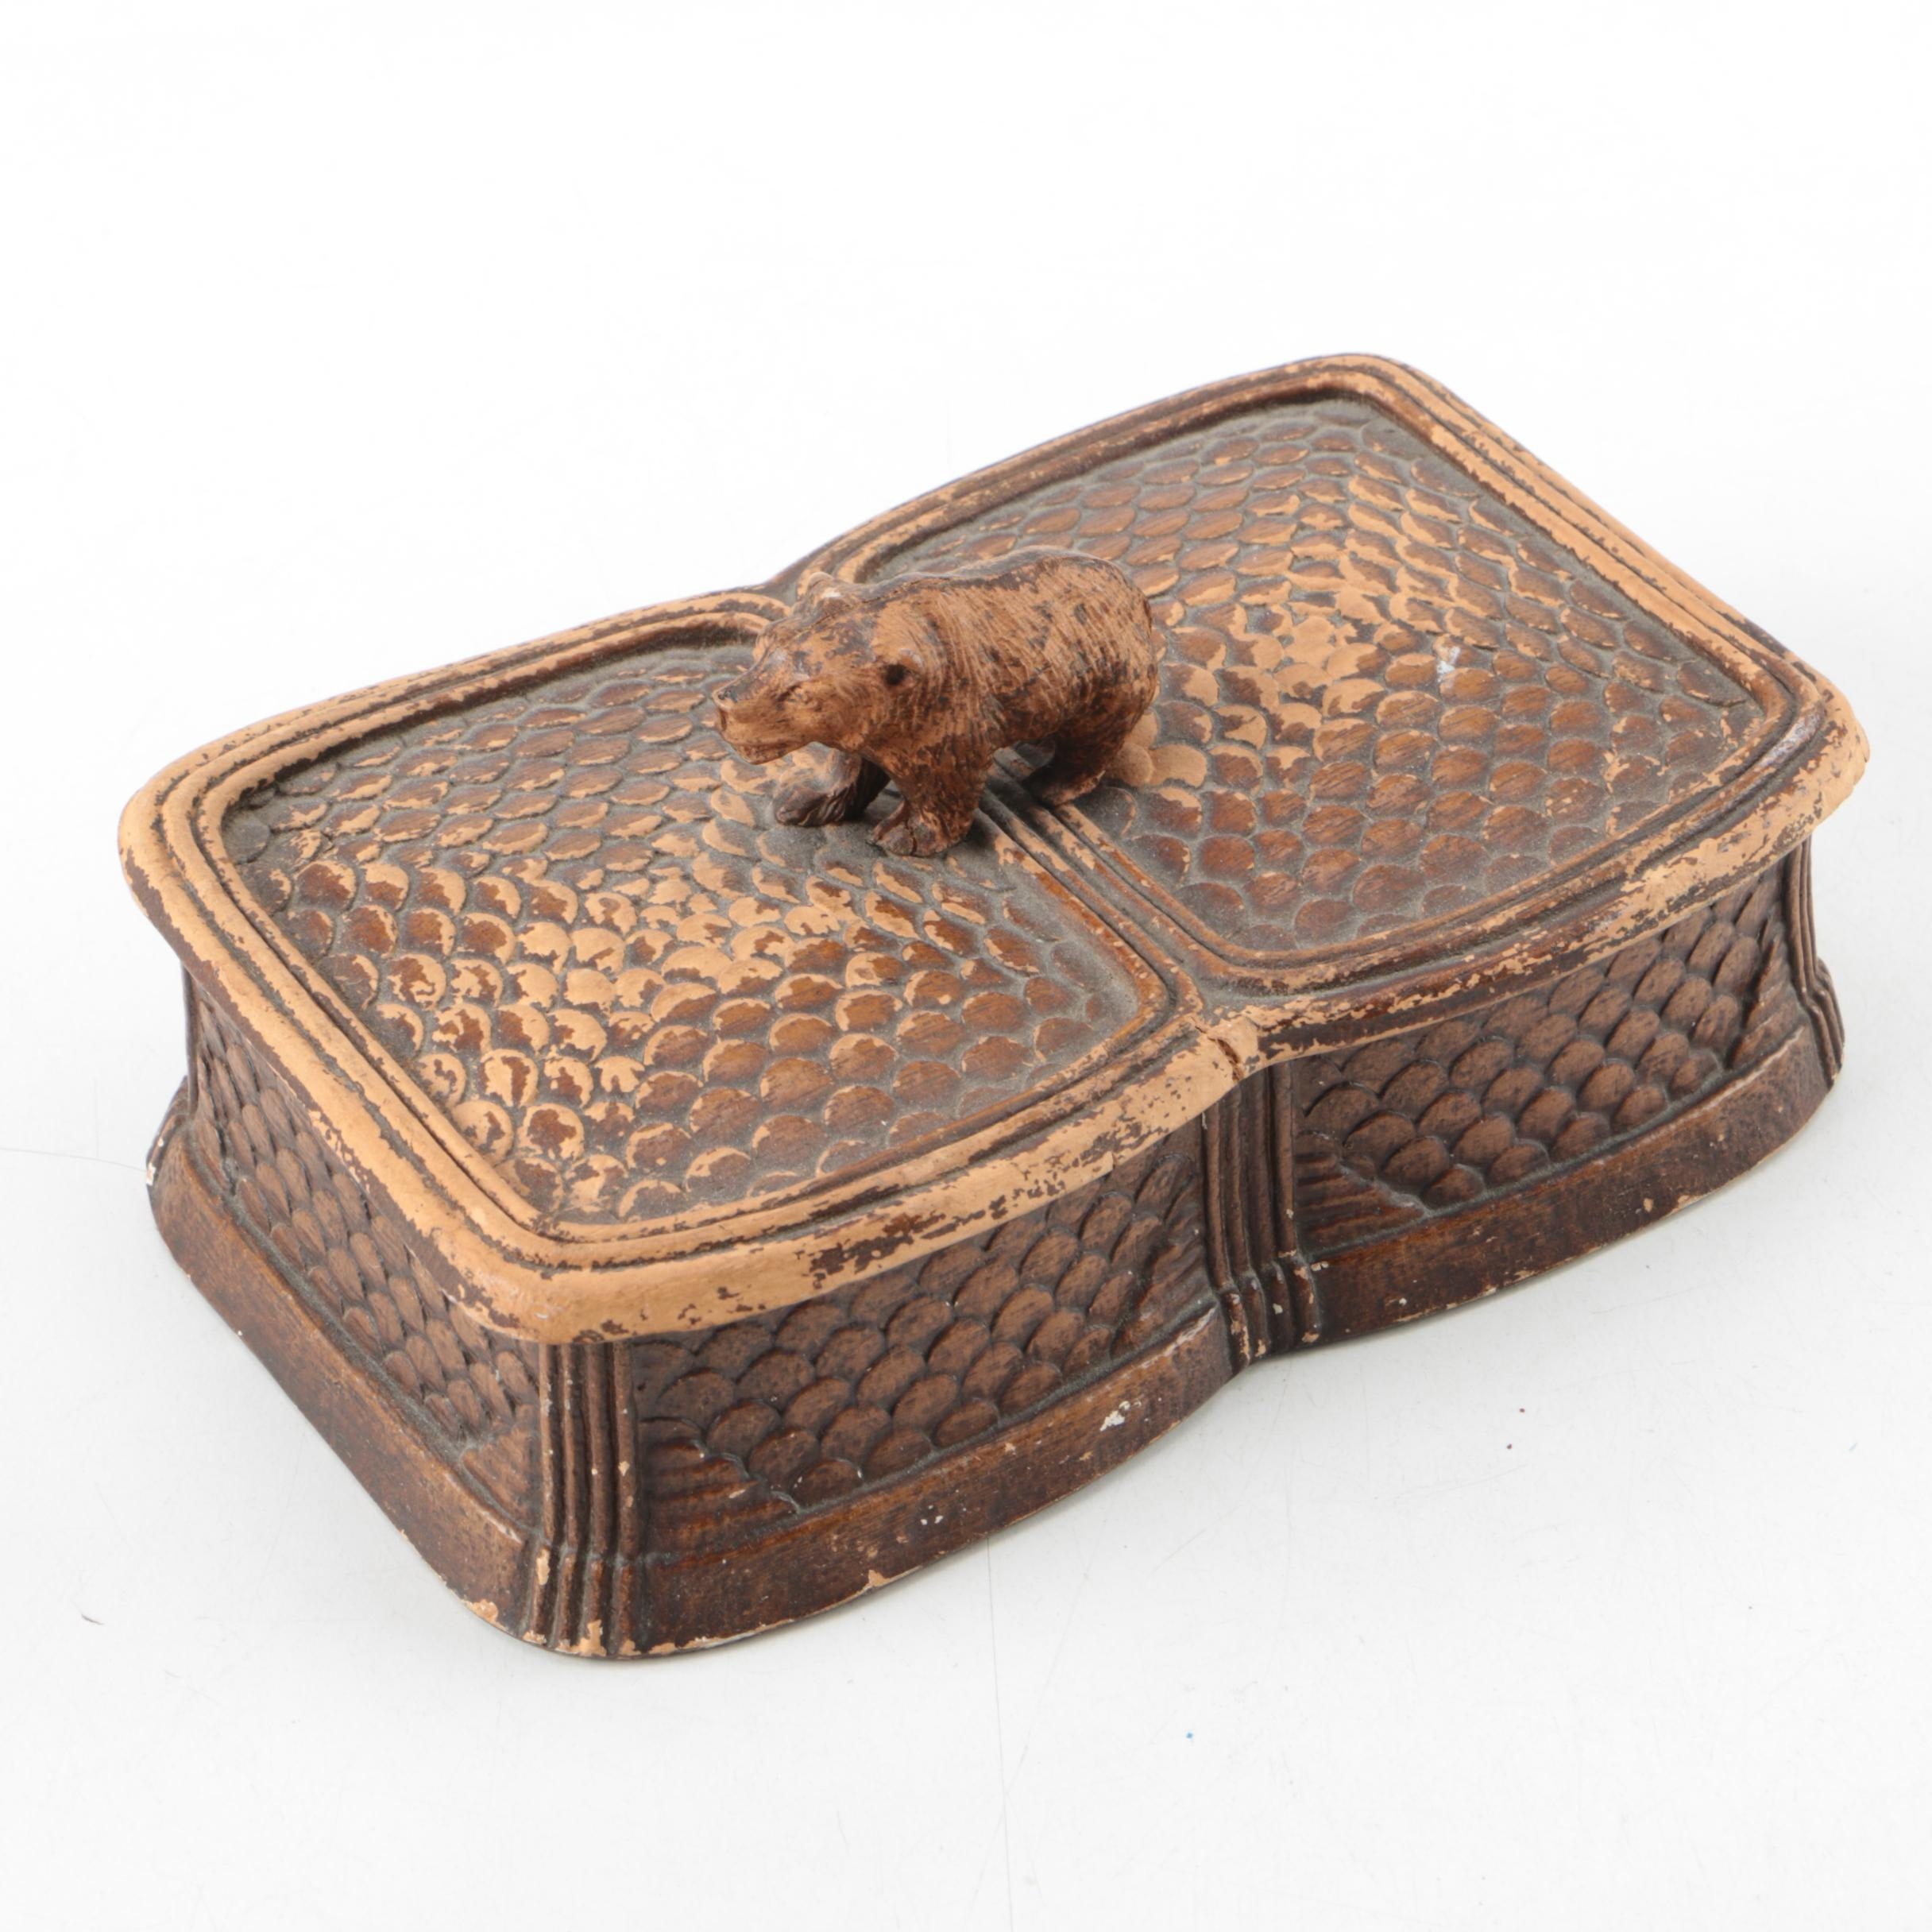 Carved Wooden Trinket Box with Bear Cub